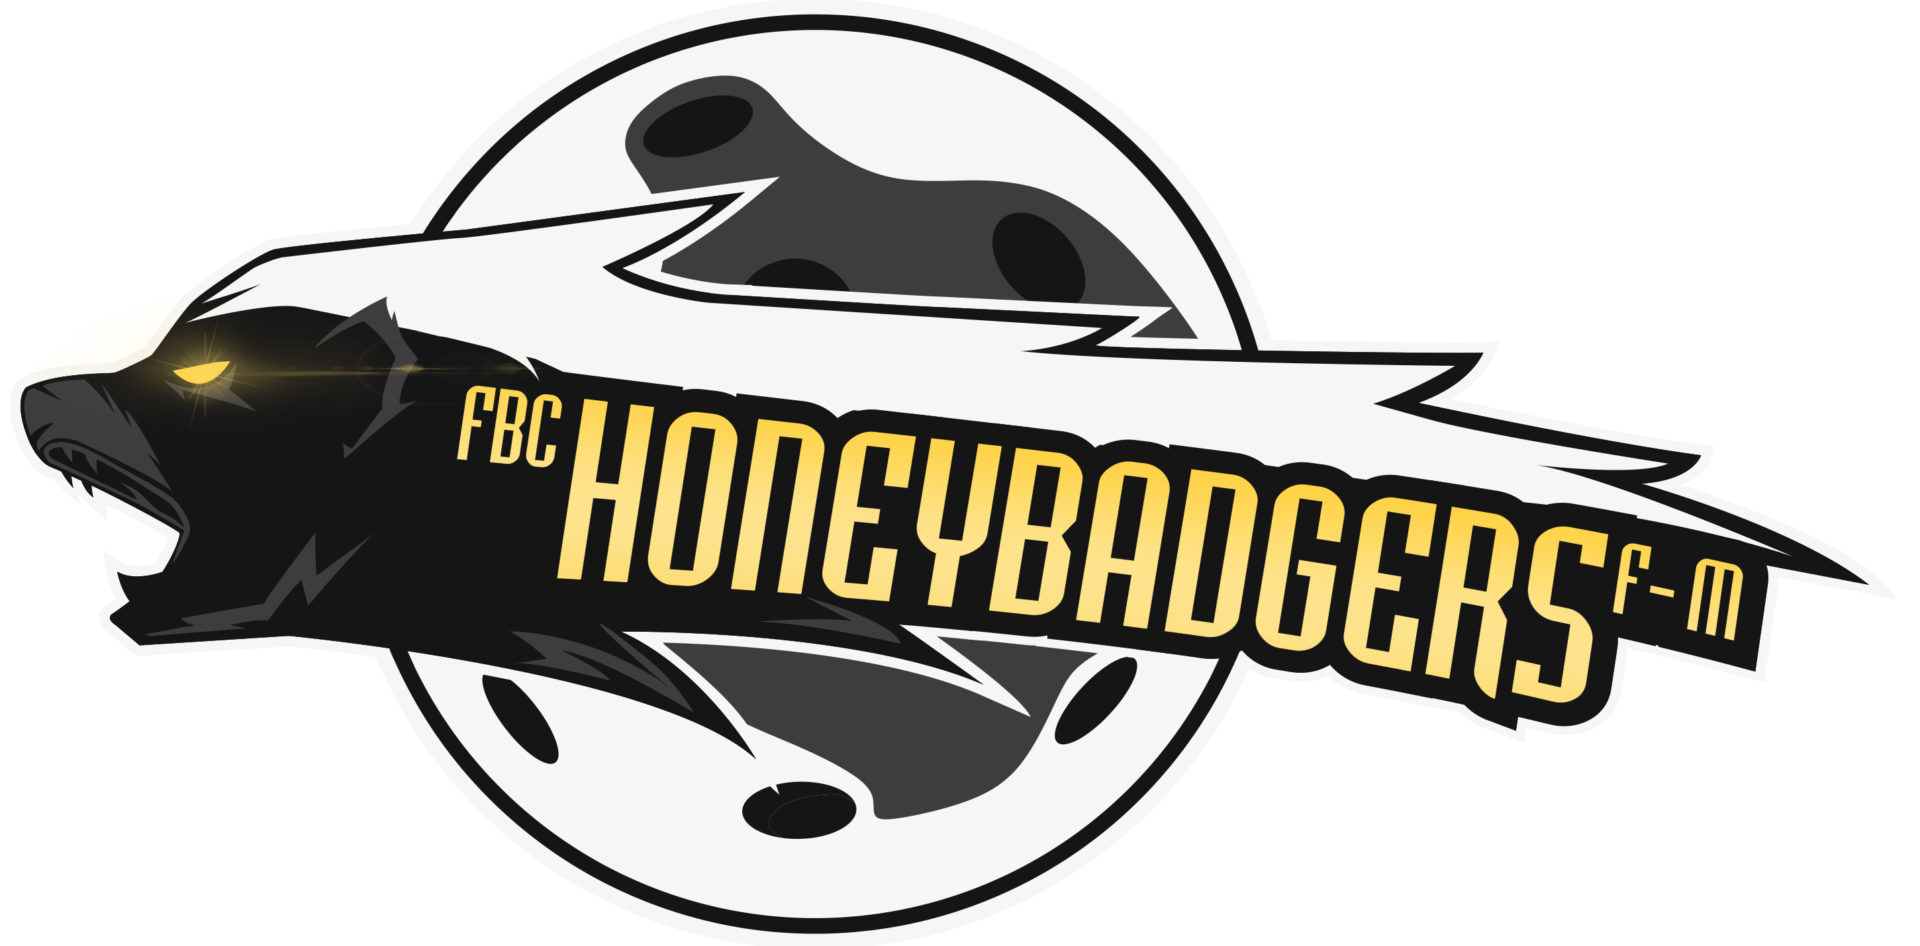 FBC Honey Badgers F-M